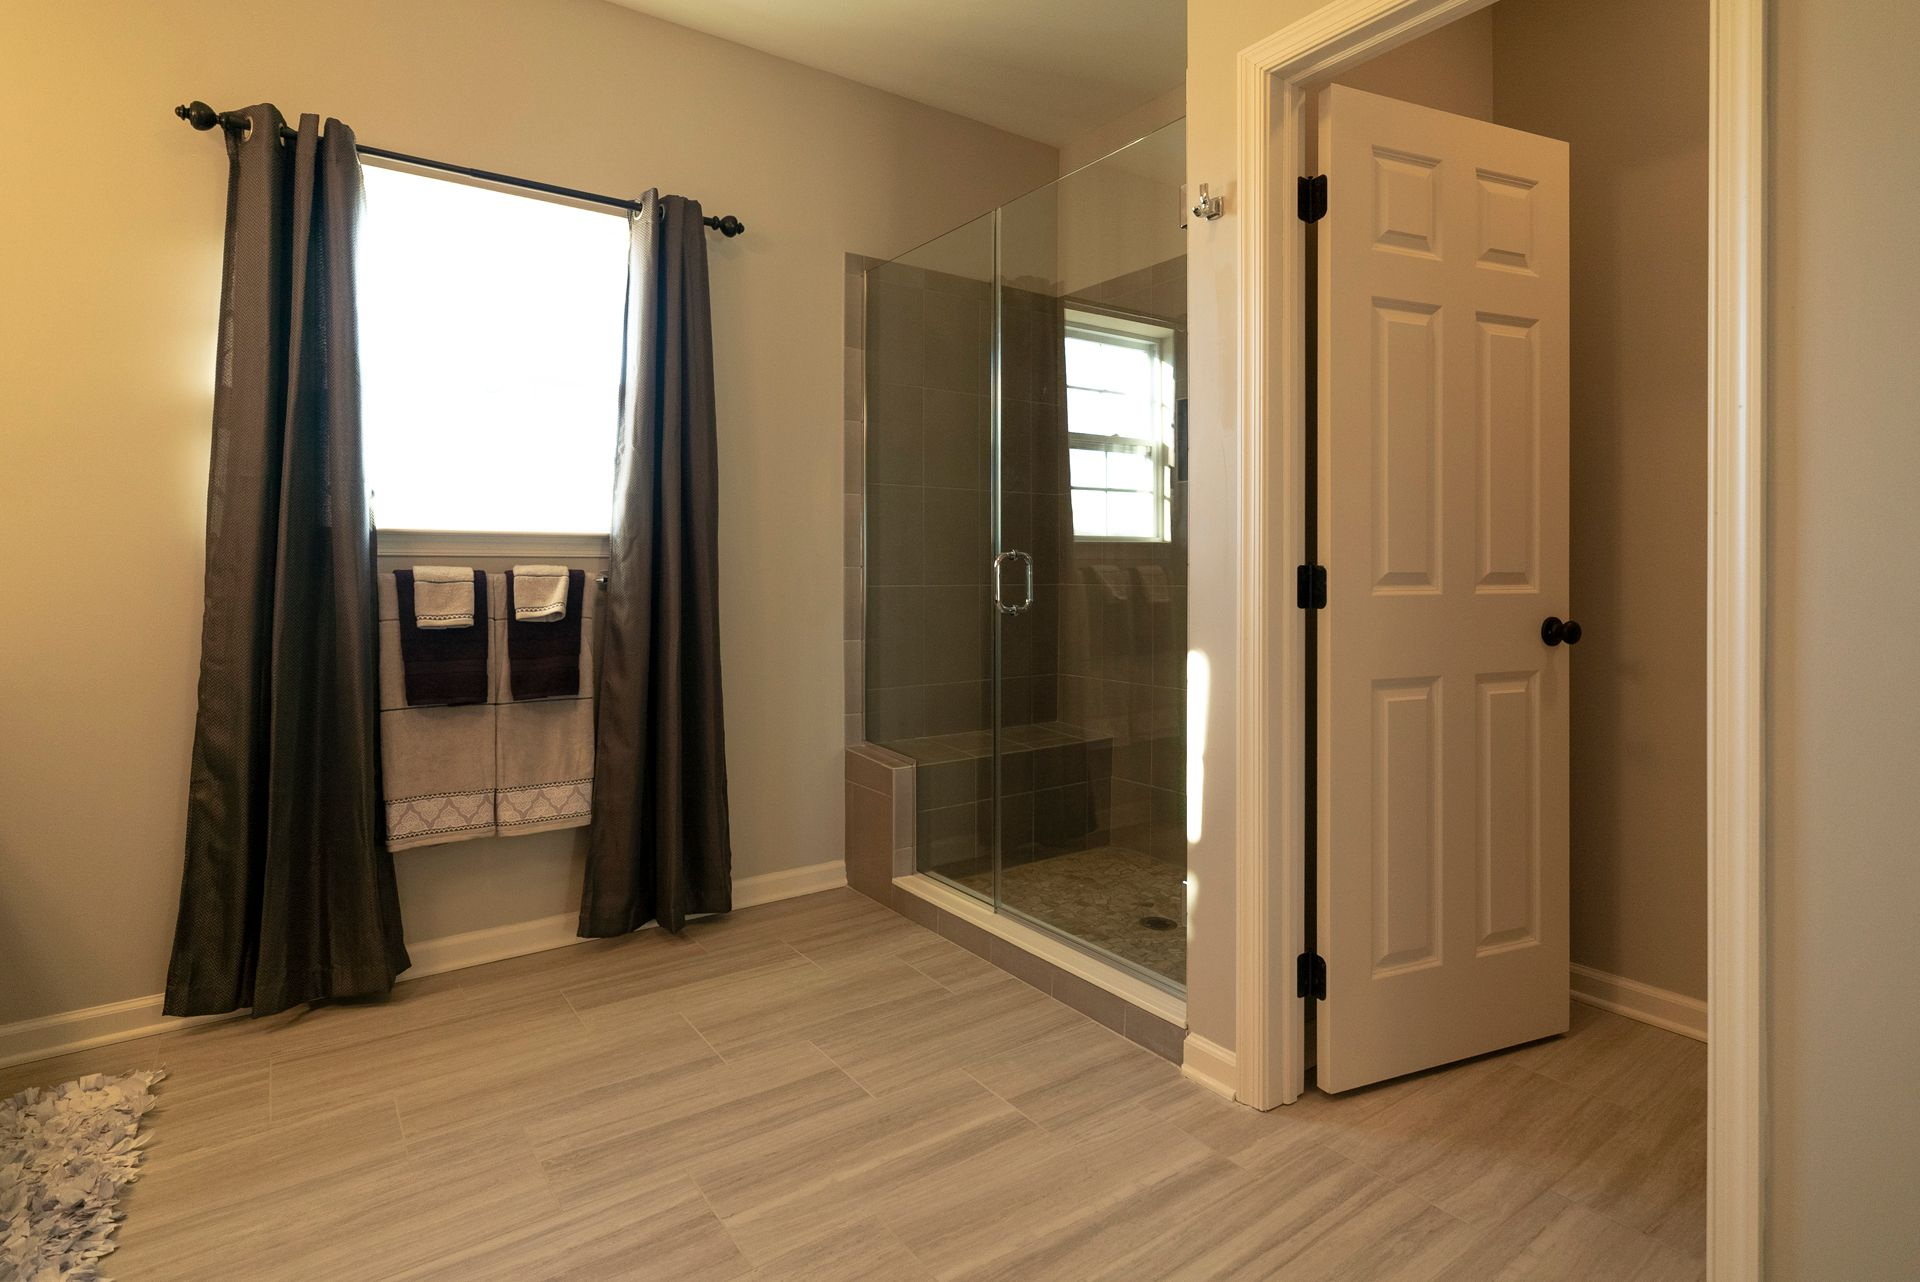 Bathroom featured in the Breckenridge Grande Traditional By Tuskes Homes - Infill